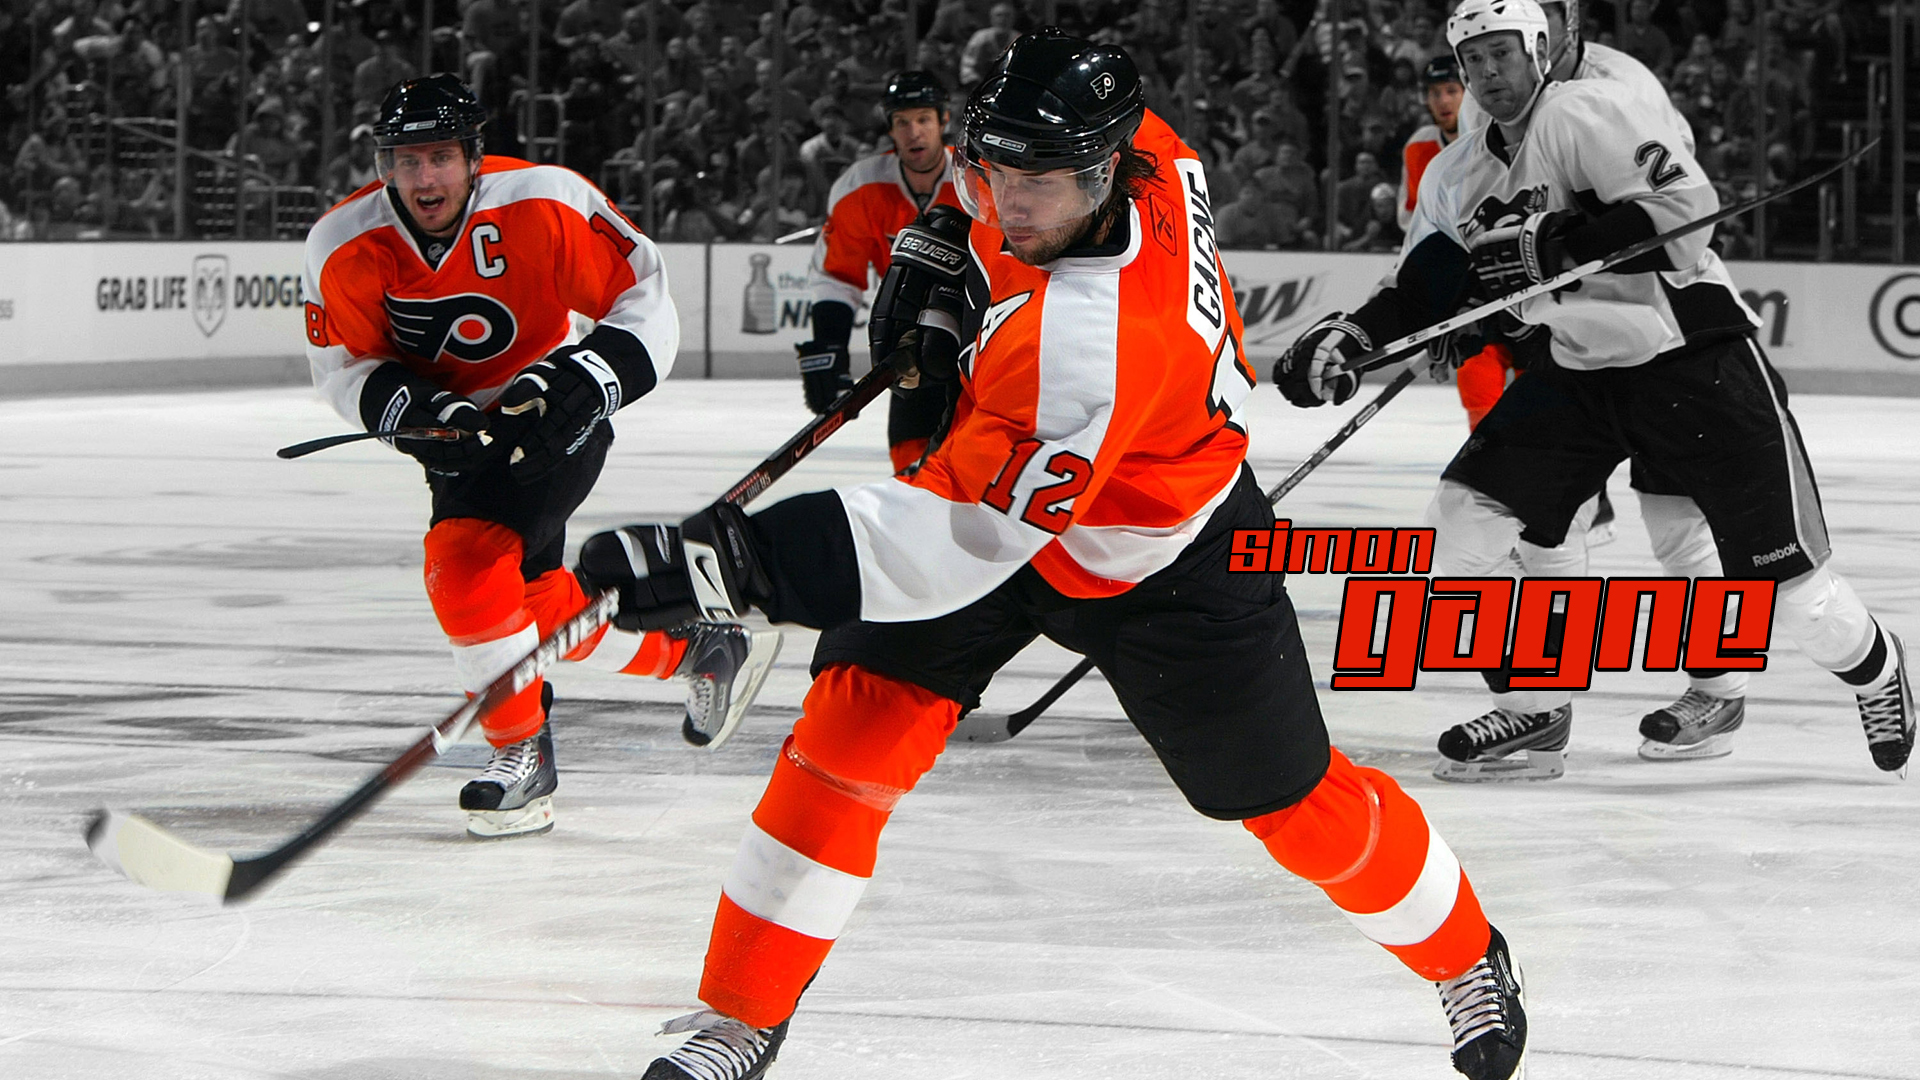 Wallpapers HD wallpapers Simon Gagne Philadelphia Flyers 1920x1080